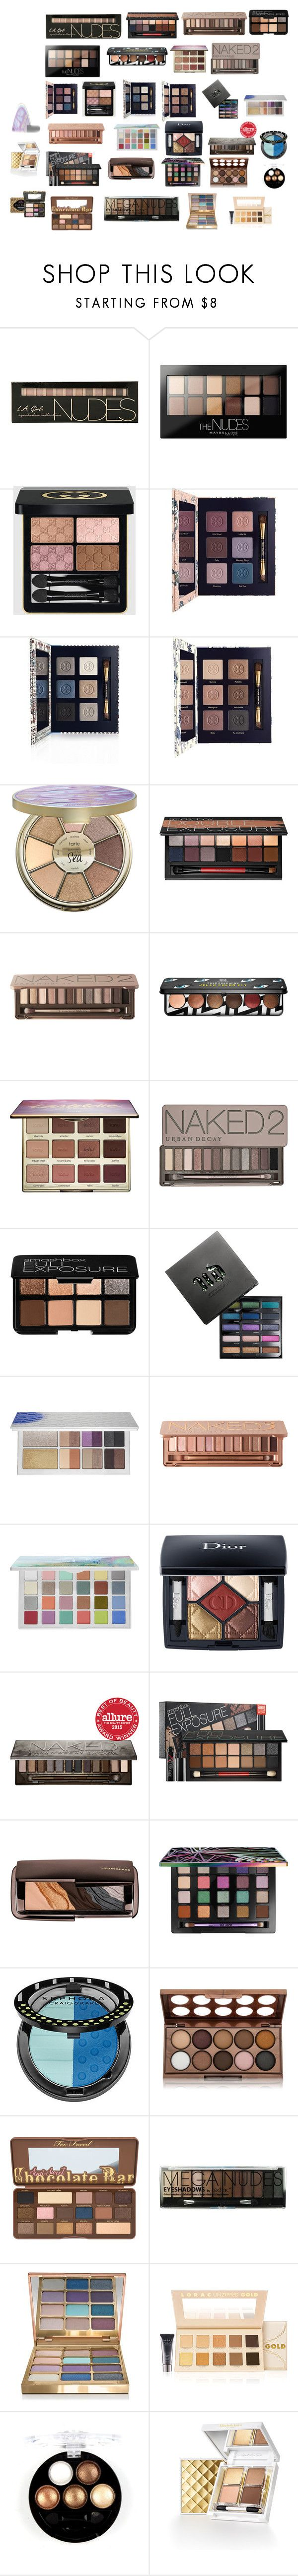 """göz farları"" by mervenara on Polyvore featuring moda, Maybelline, Gucci, Tory Burch, tarte, Smashbox, Urban Decay, Sephora Collection, Christian Dior ve Hourglass Cosmetics"